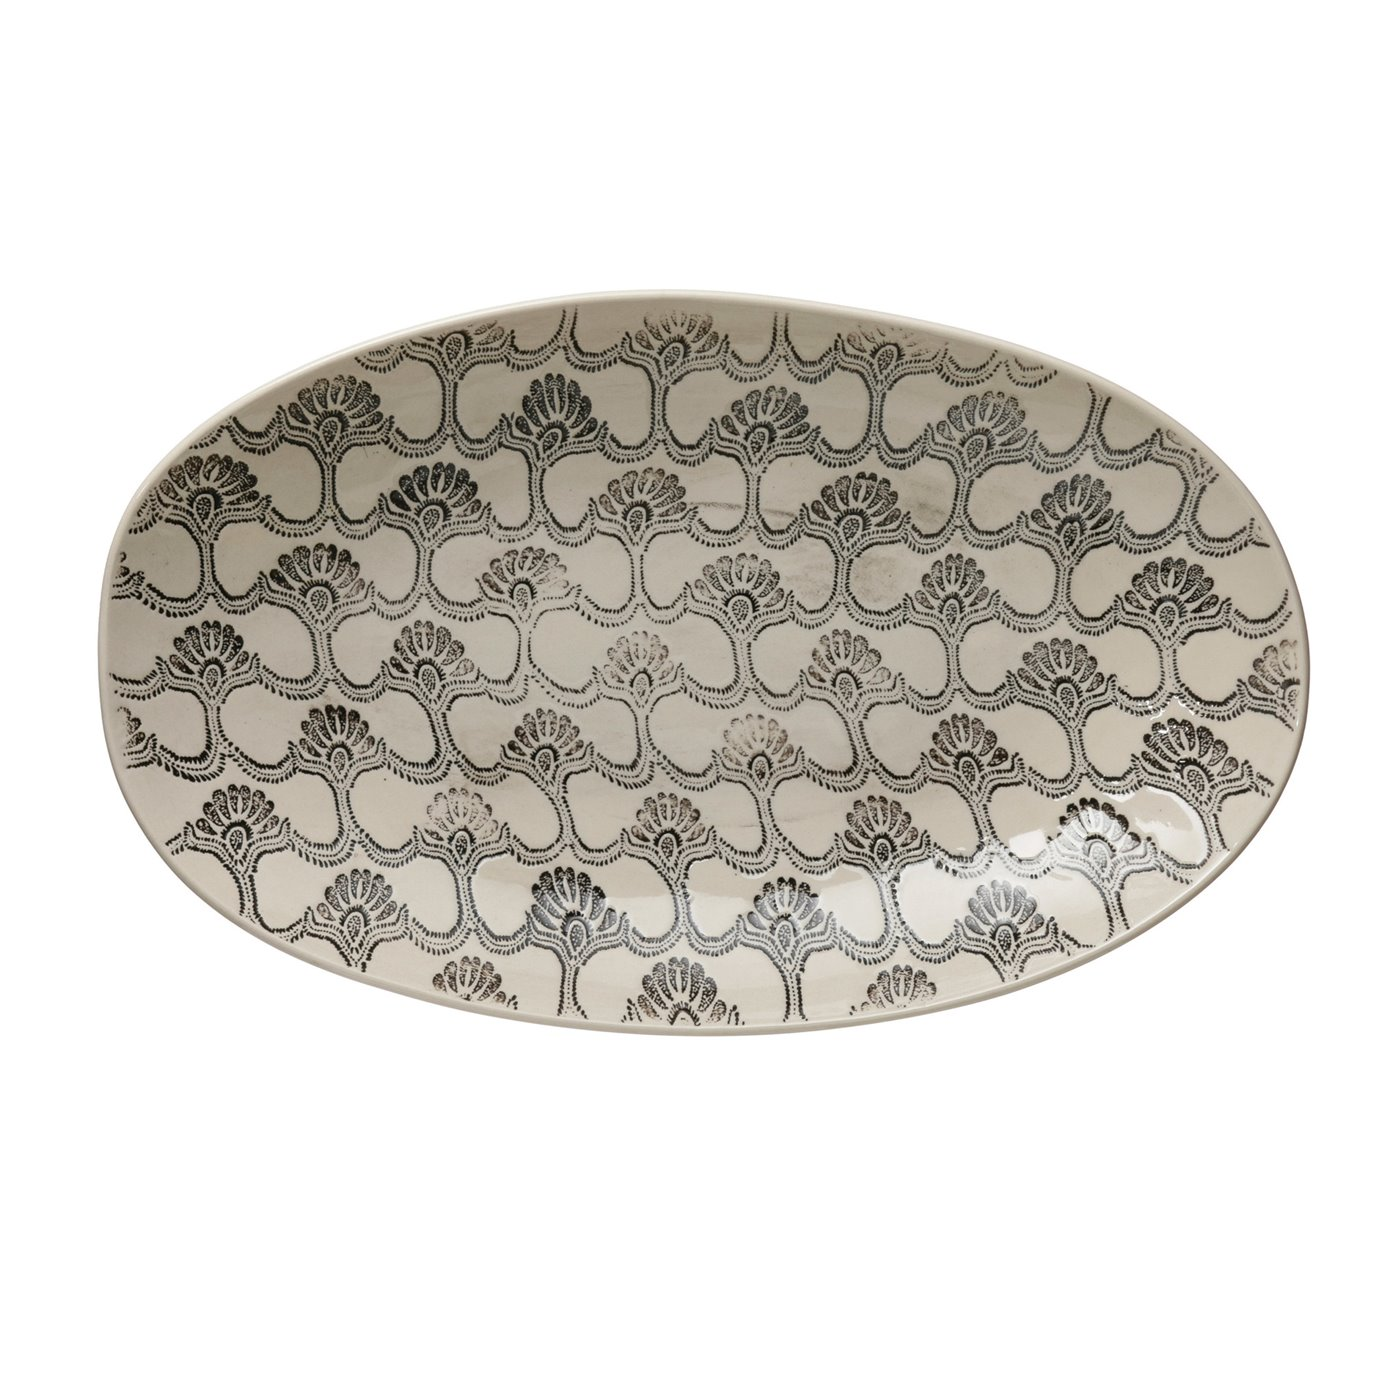 Hand-Stamped Stoneware Serving Bowl with Embossed Pattern, Black & Cream Color